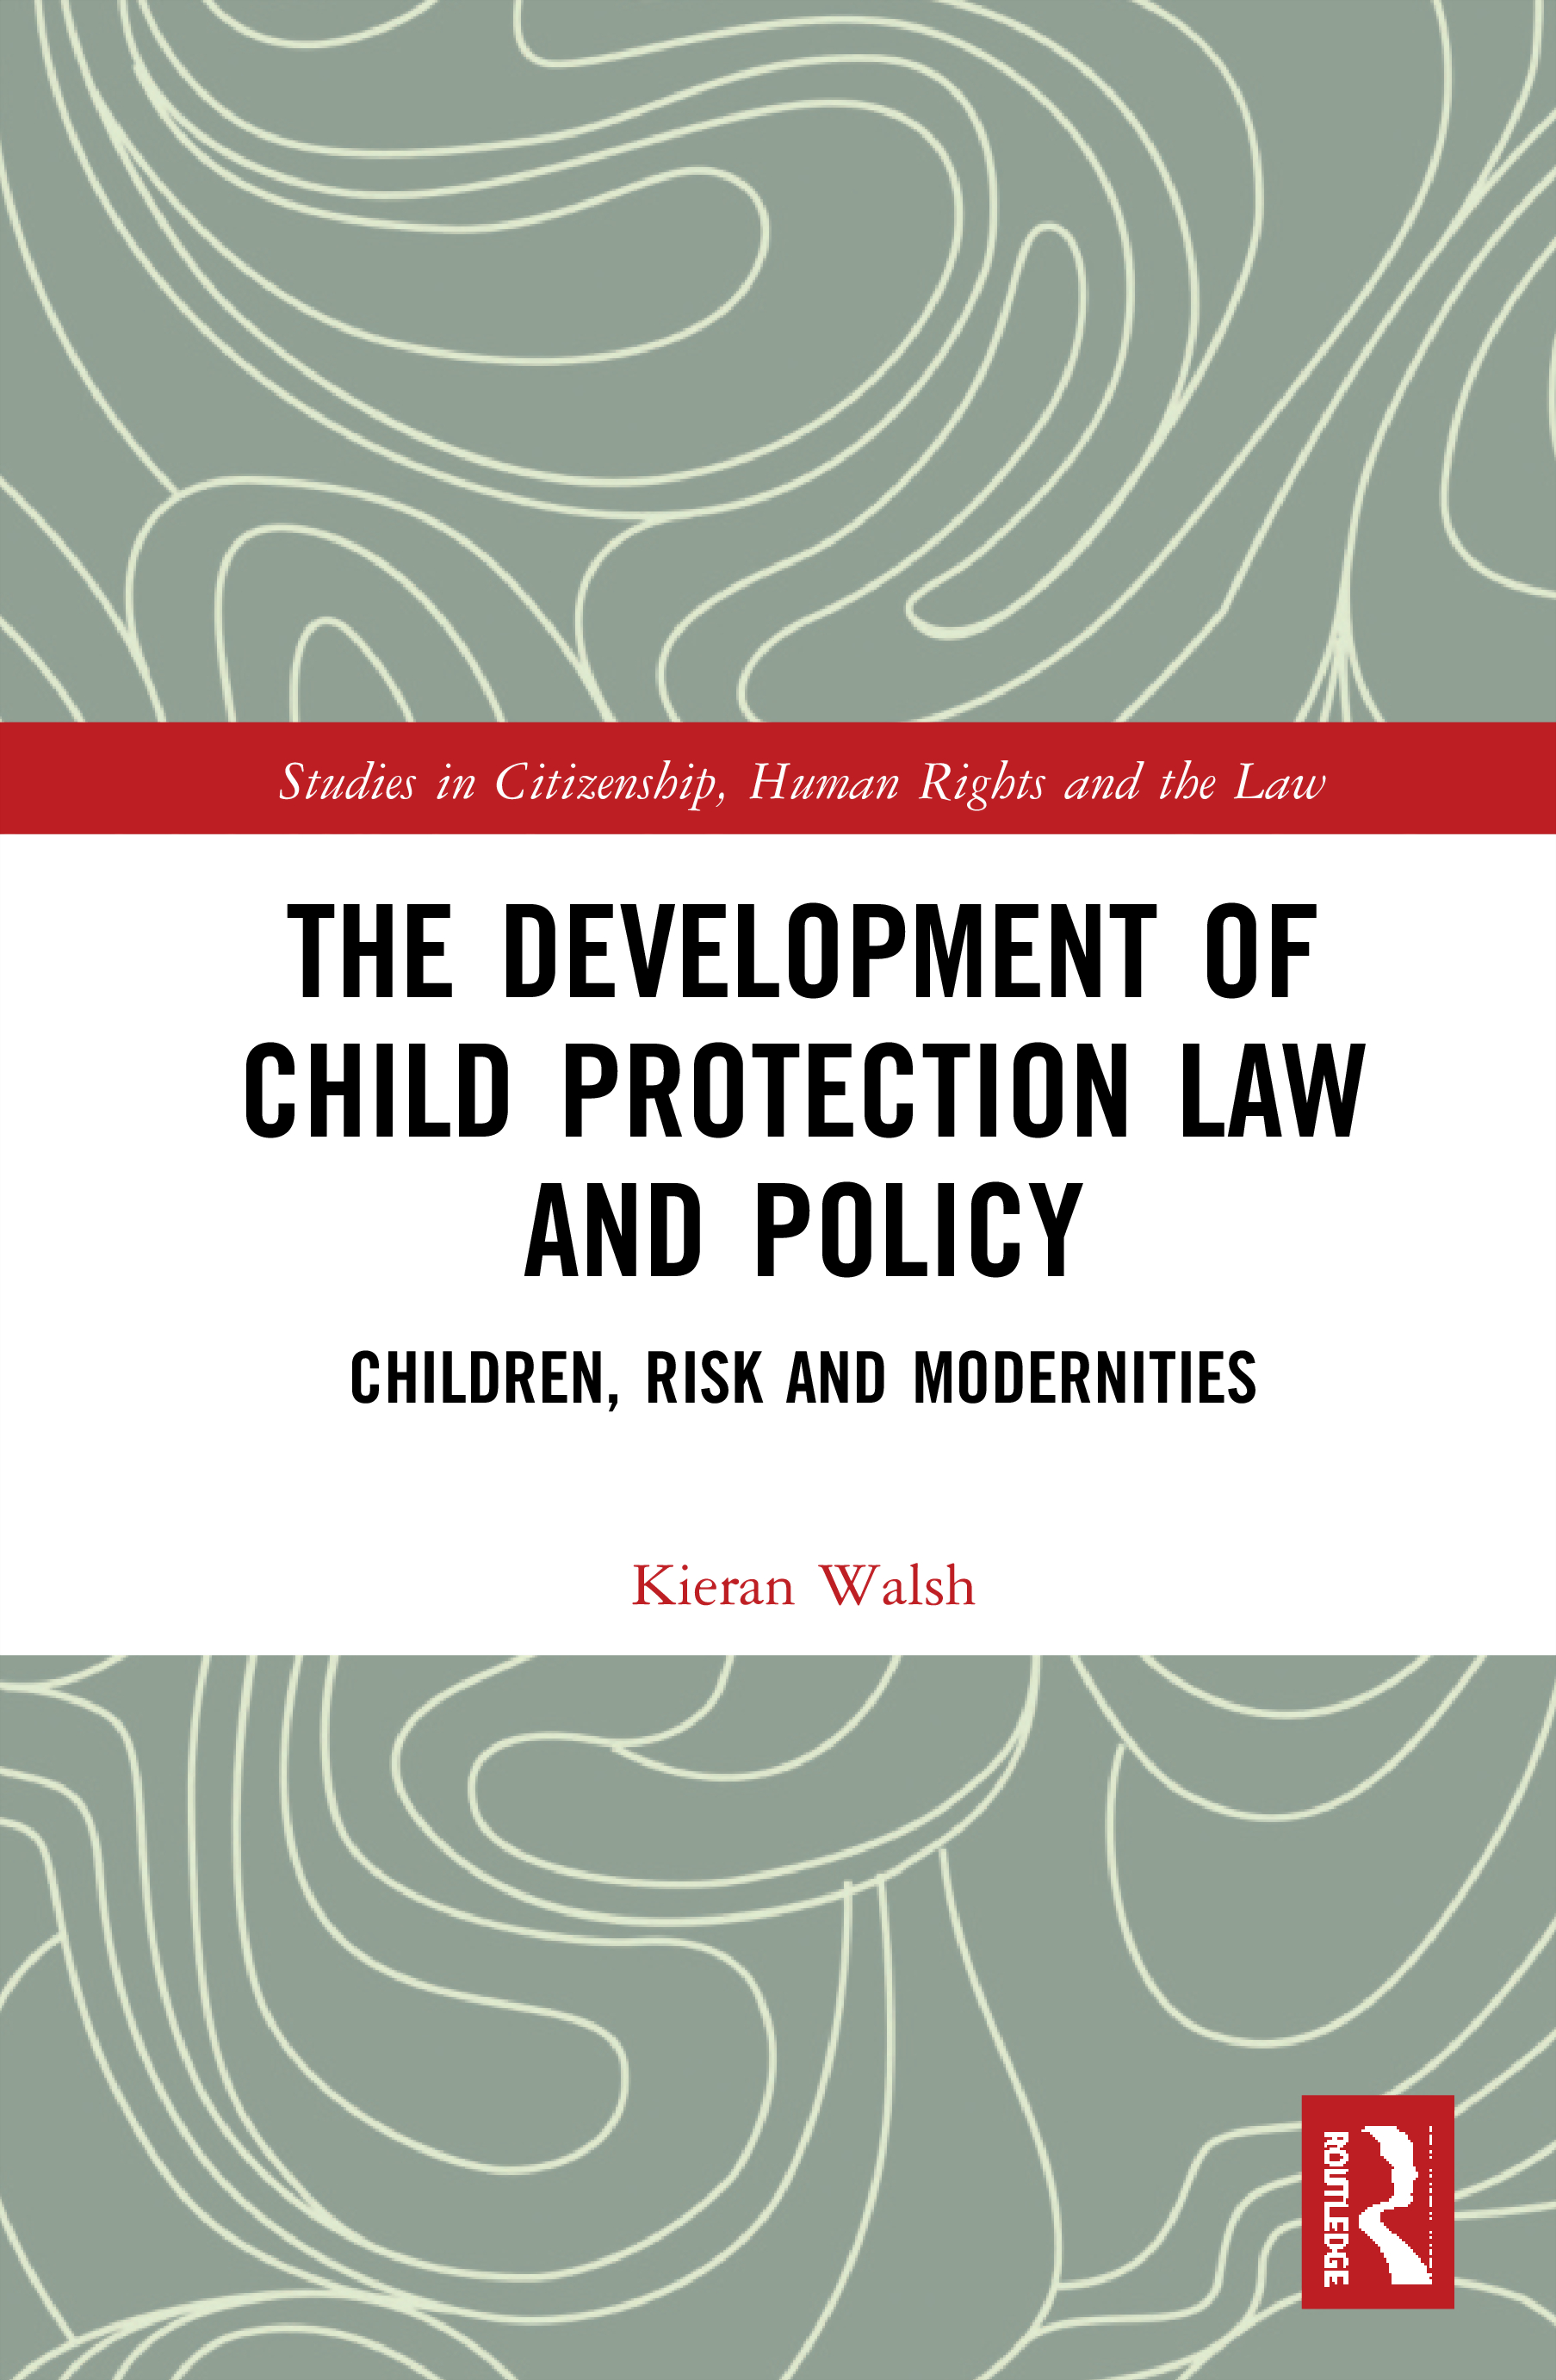 The Development of Child Protection Law and Policy: Children, Risk and Modernities book cover